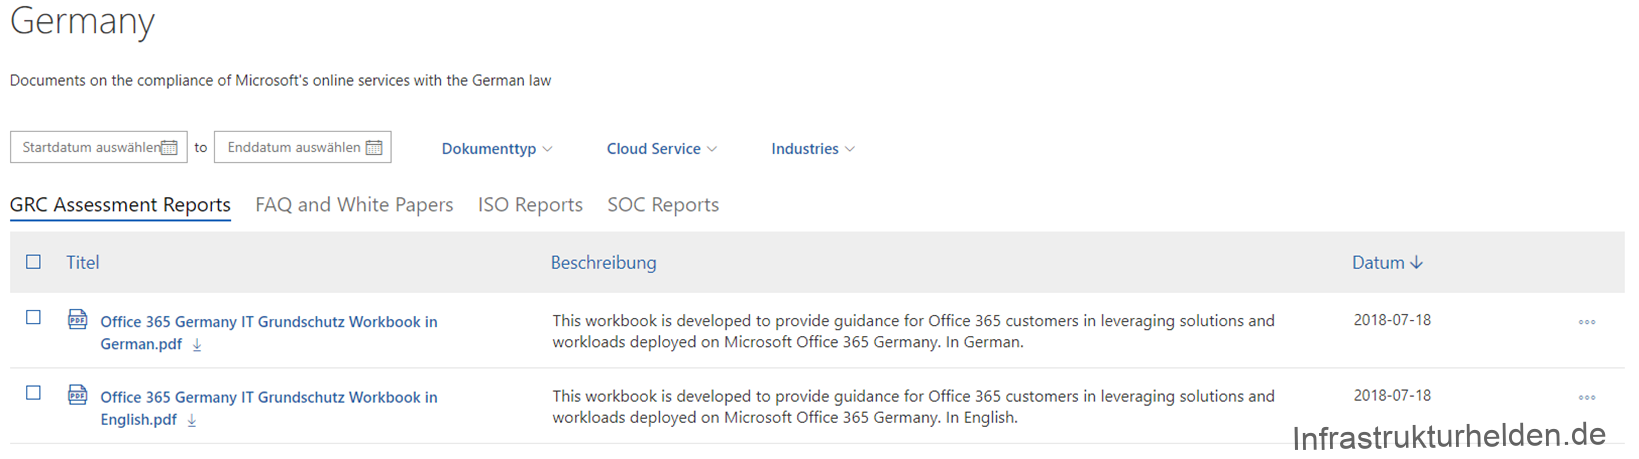 Overview of documents in Reginal Compliance Dashboard for Germany. Source: Screenshot Microsoft.com